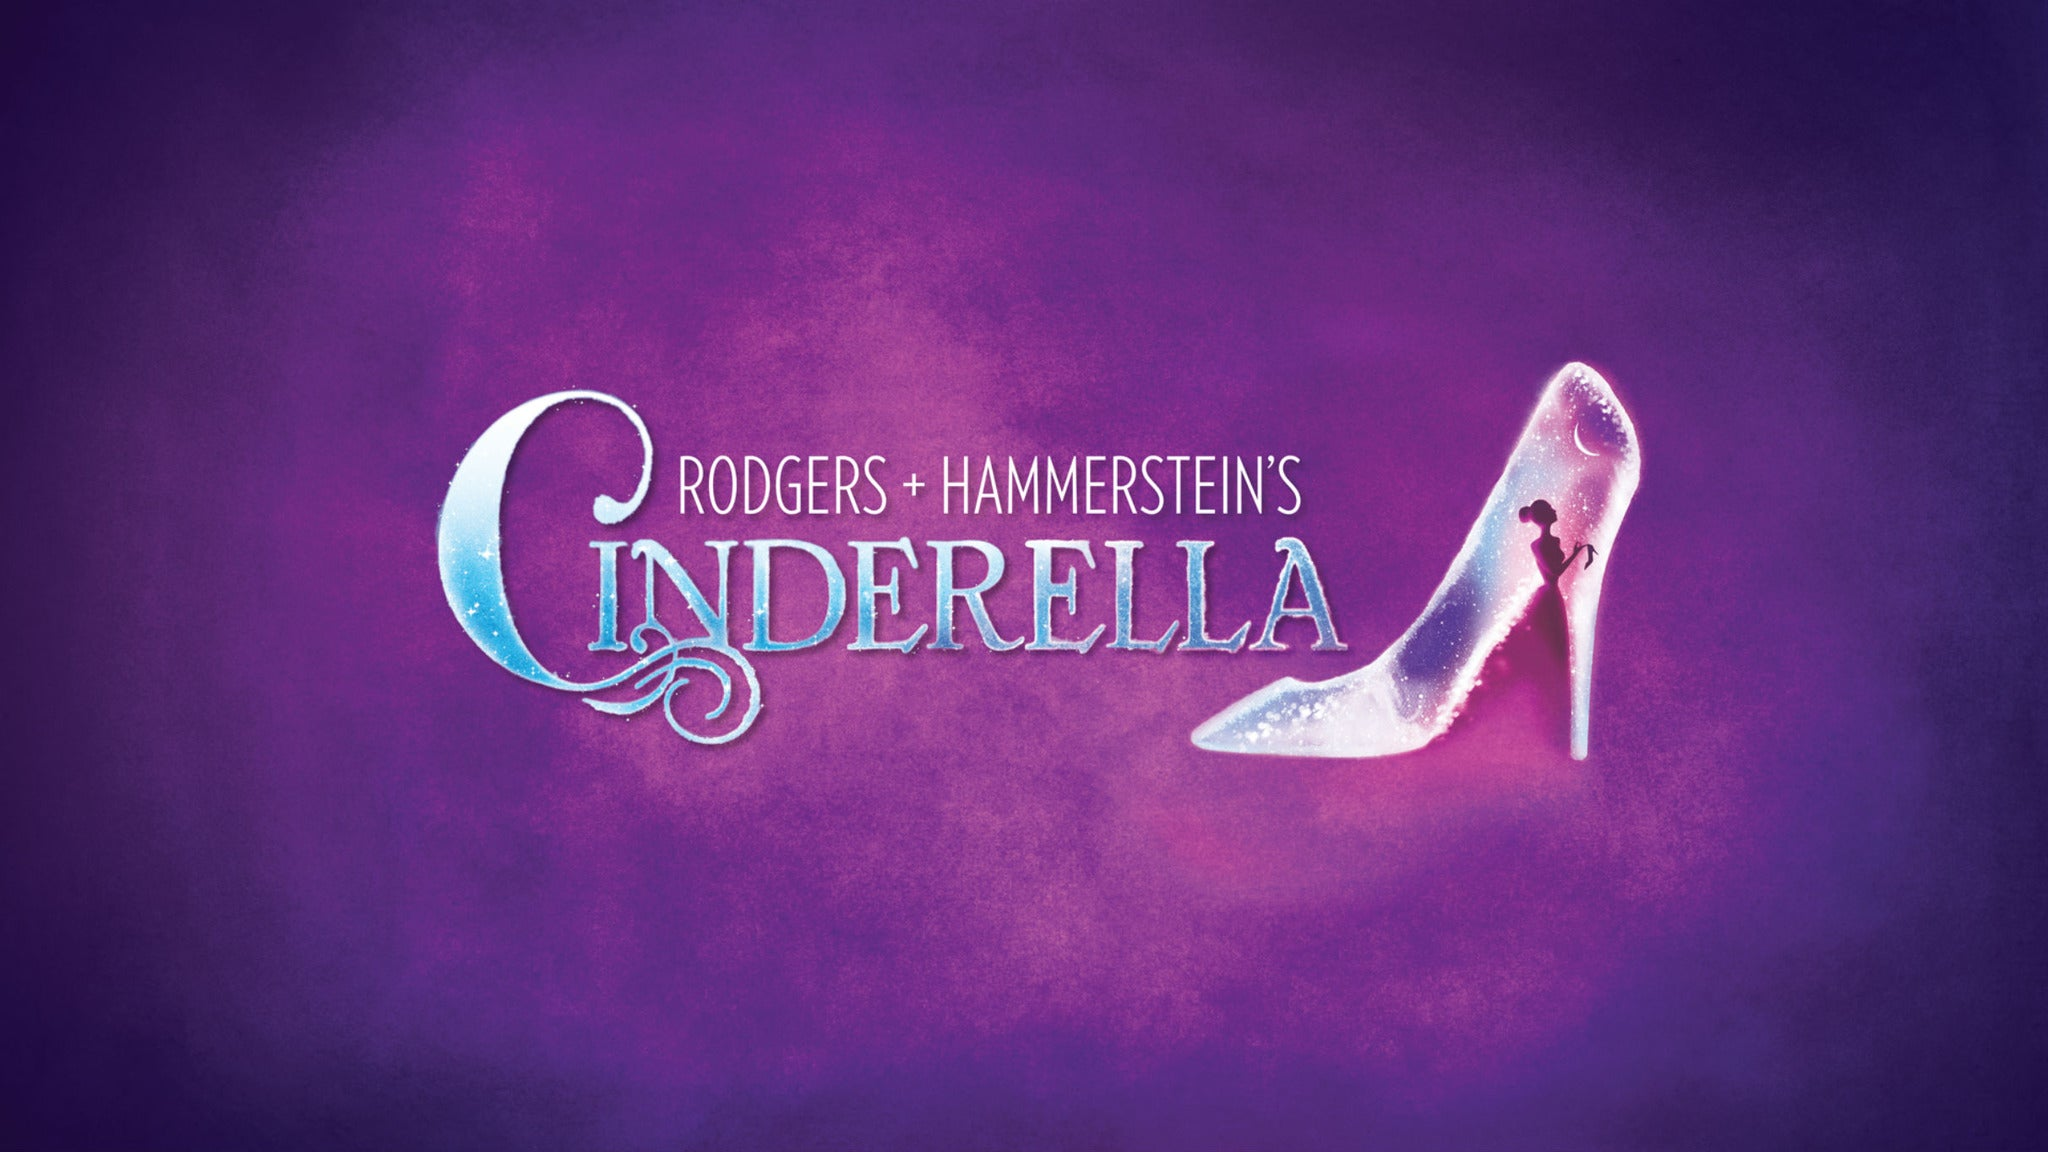 Cinderella-Theater at Paper Mill Playhouse